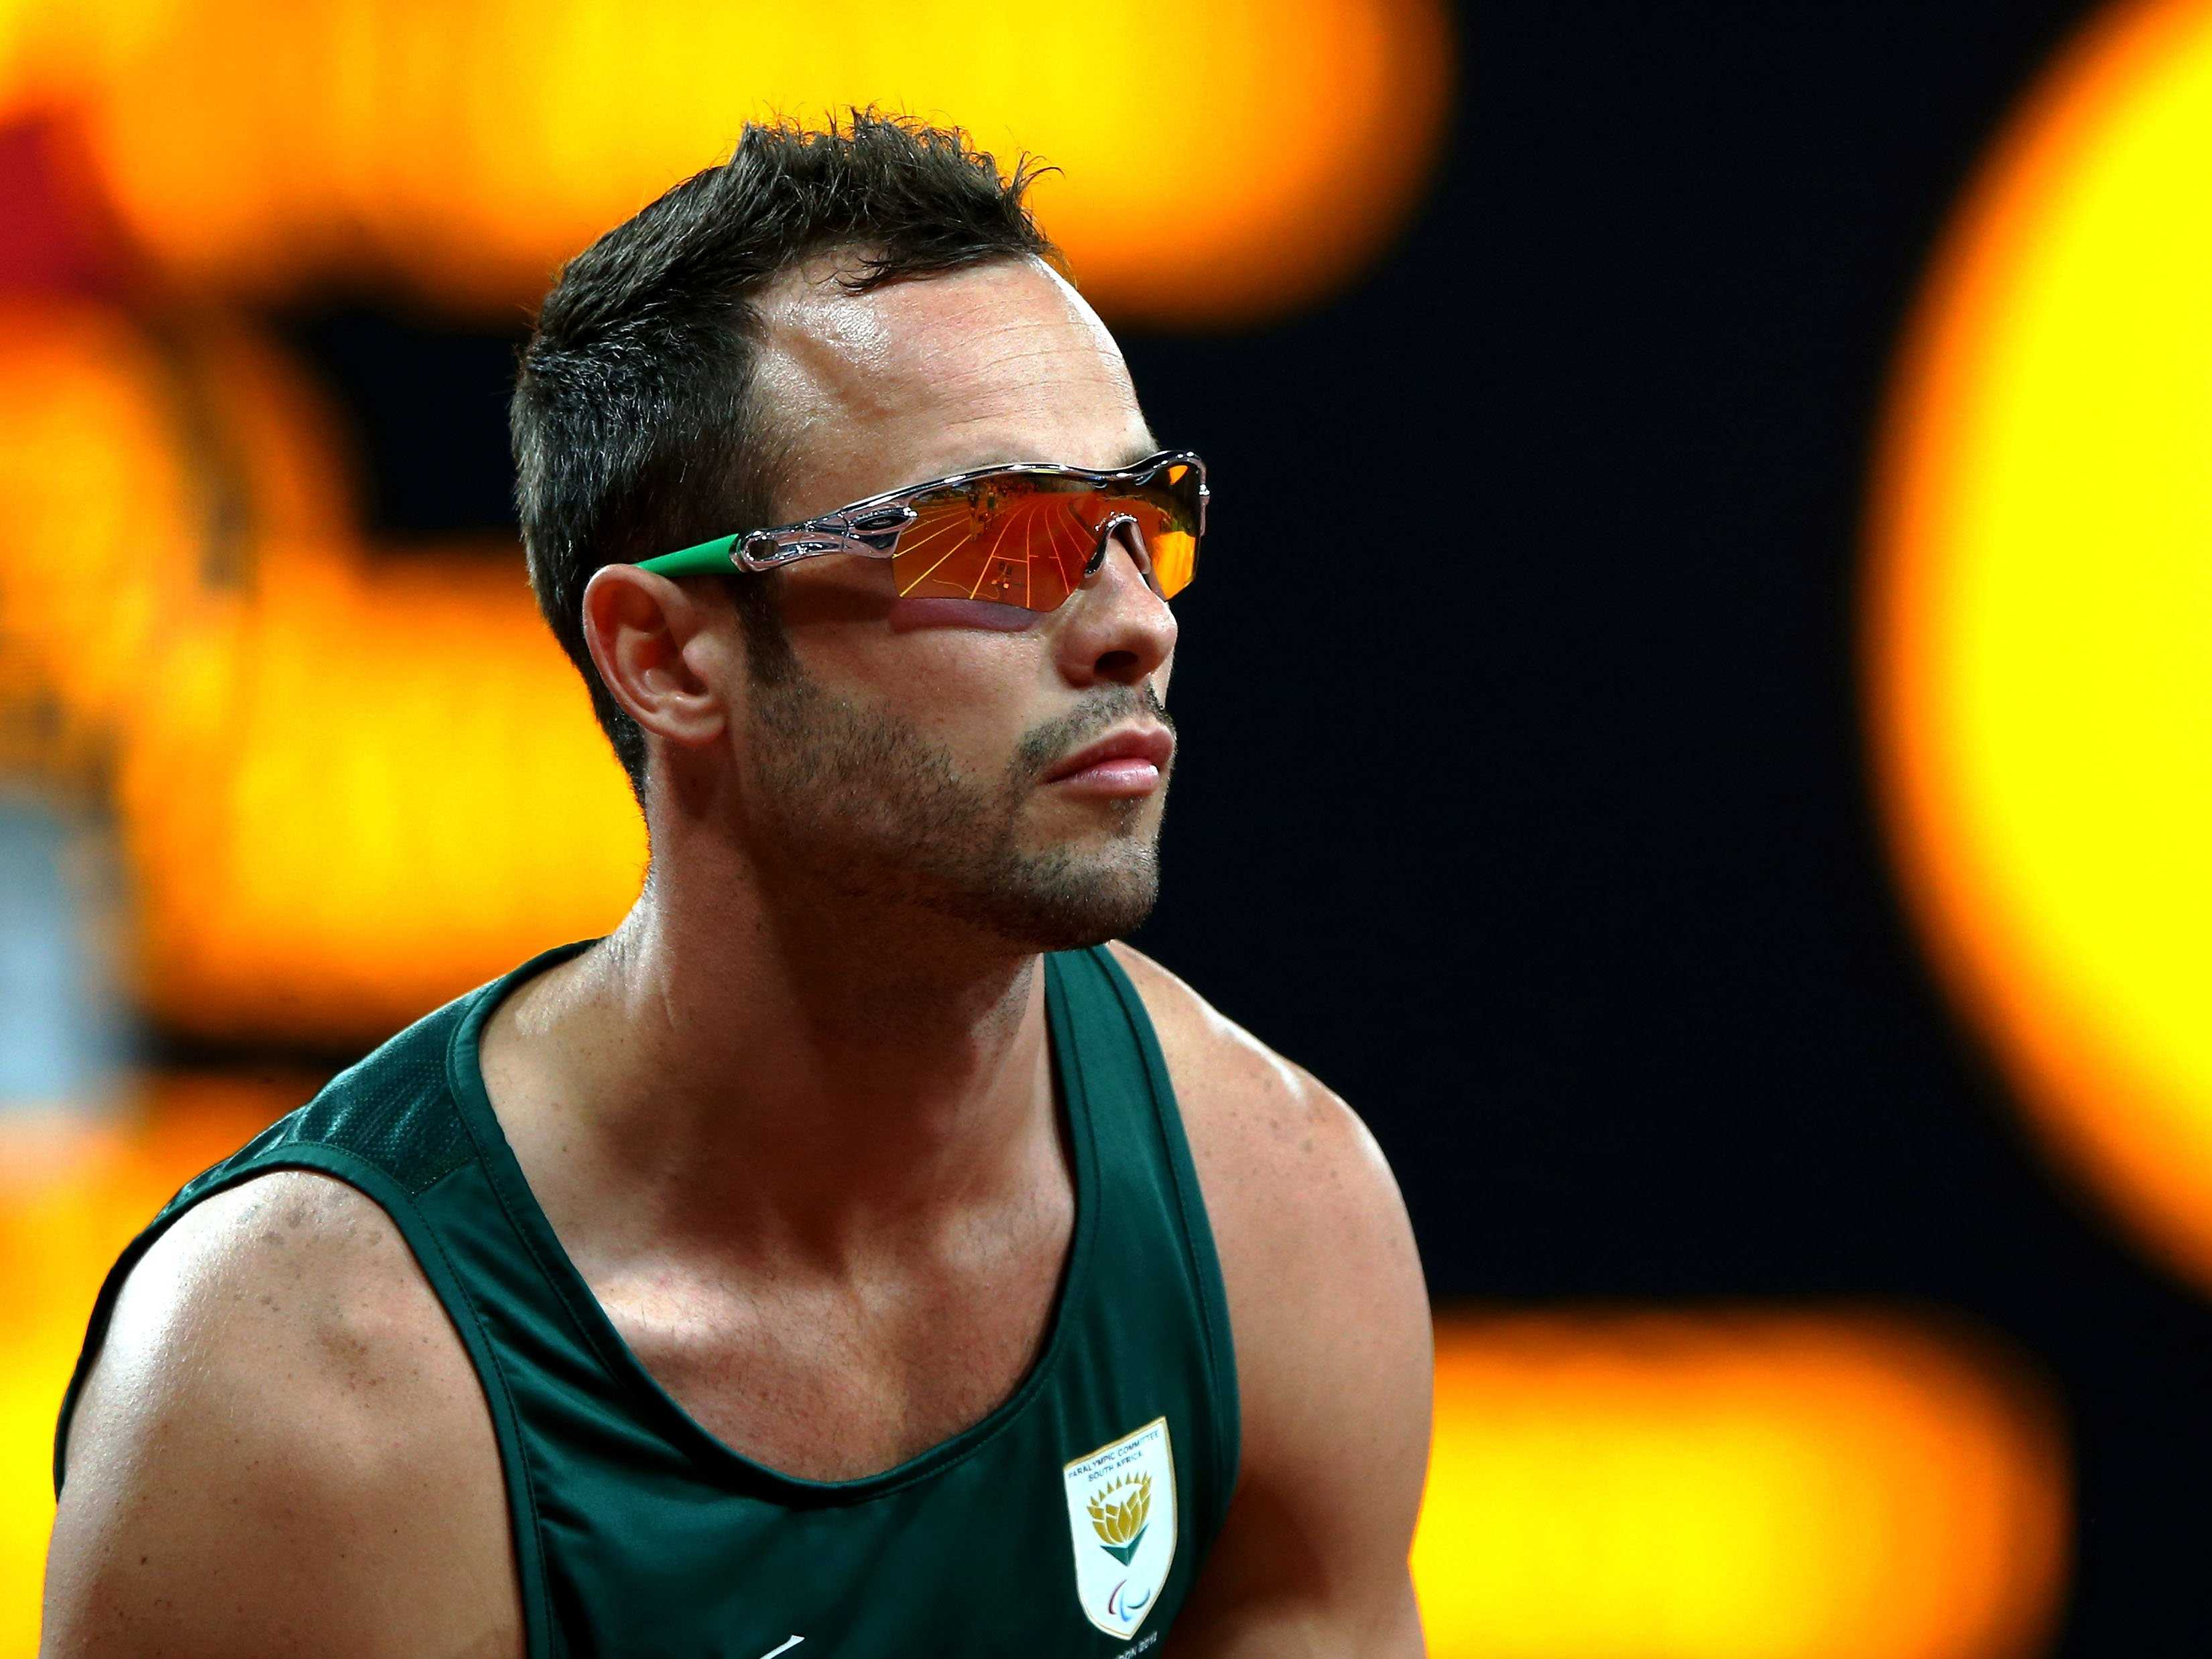 Oscar Pistorius Hd Photos